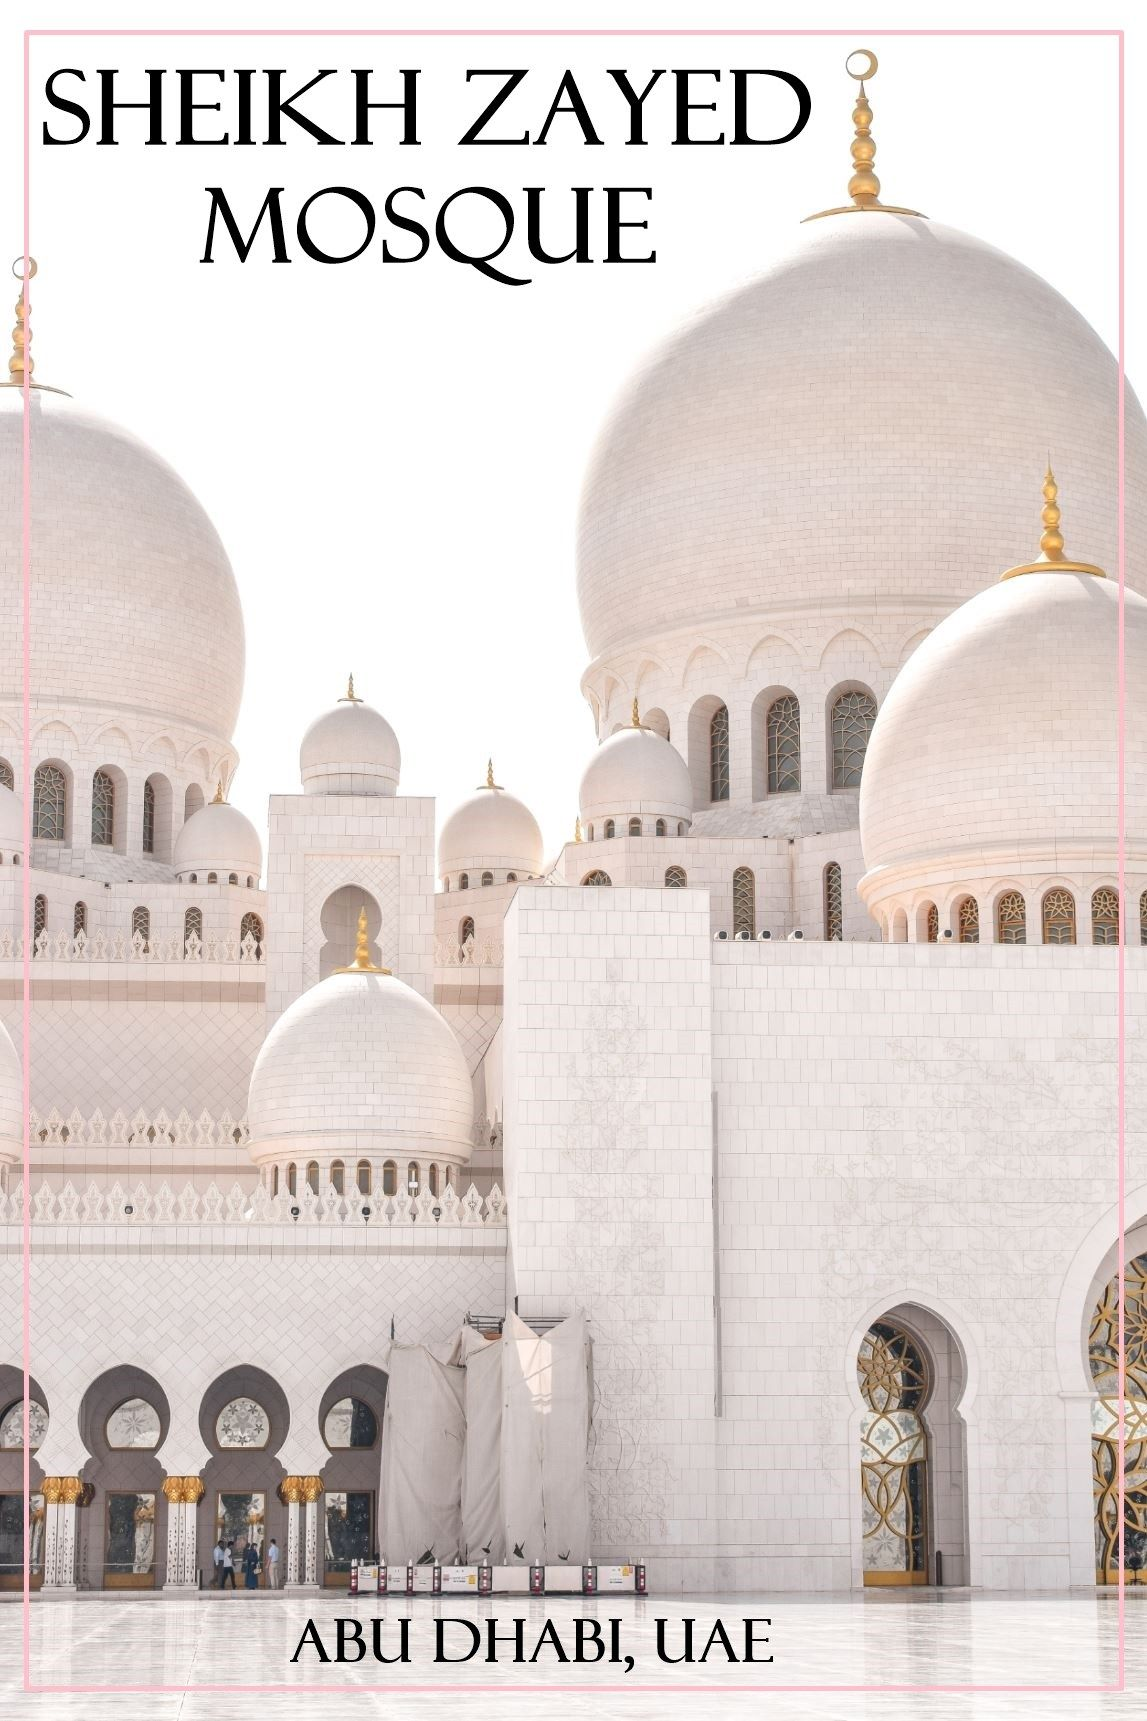 Visiting The Grand Mosque Sheikh Zayed Of Abu Dhabi Middle